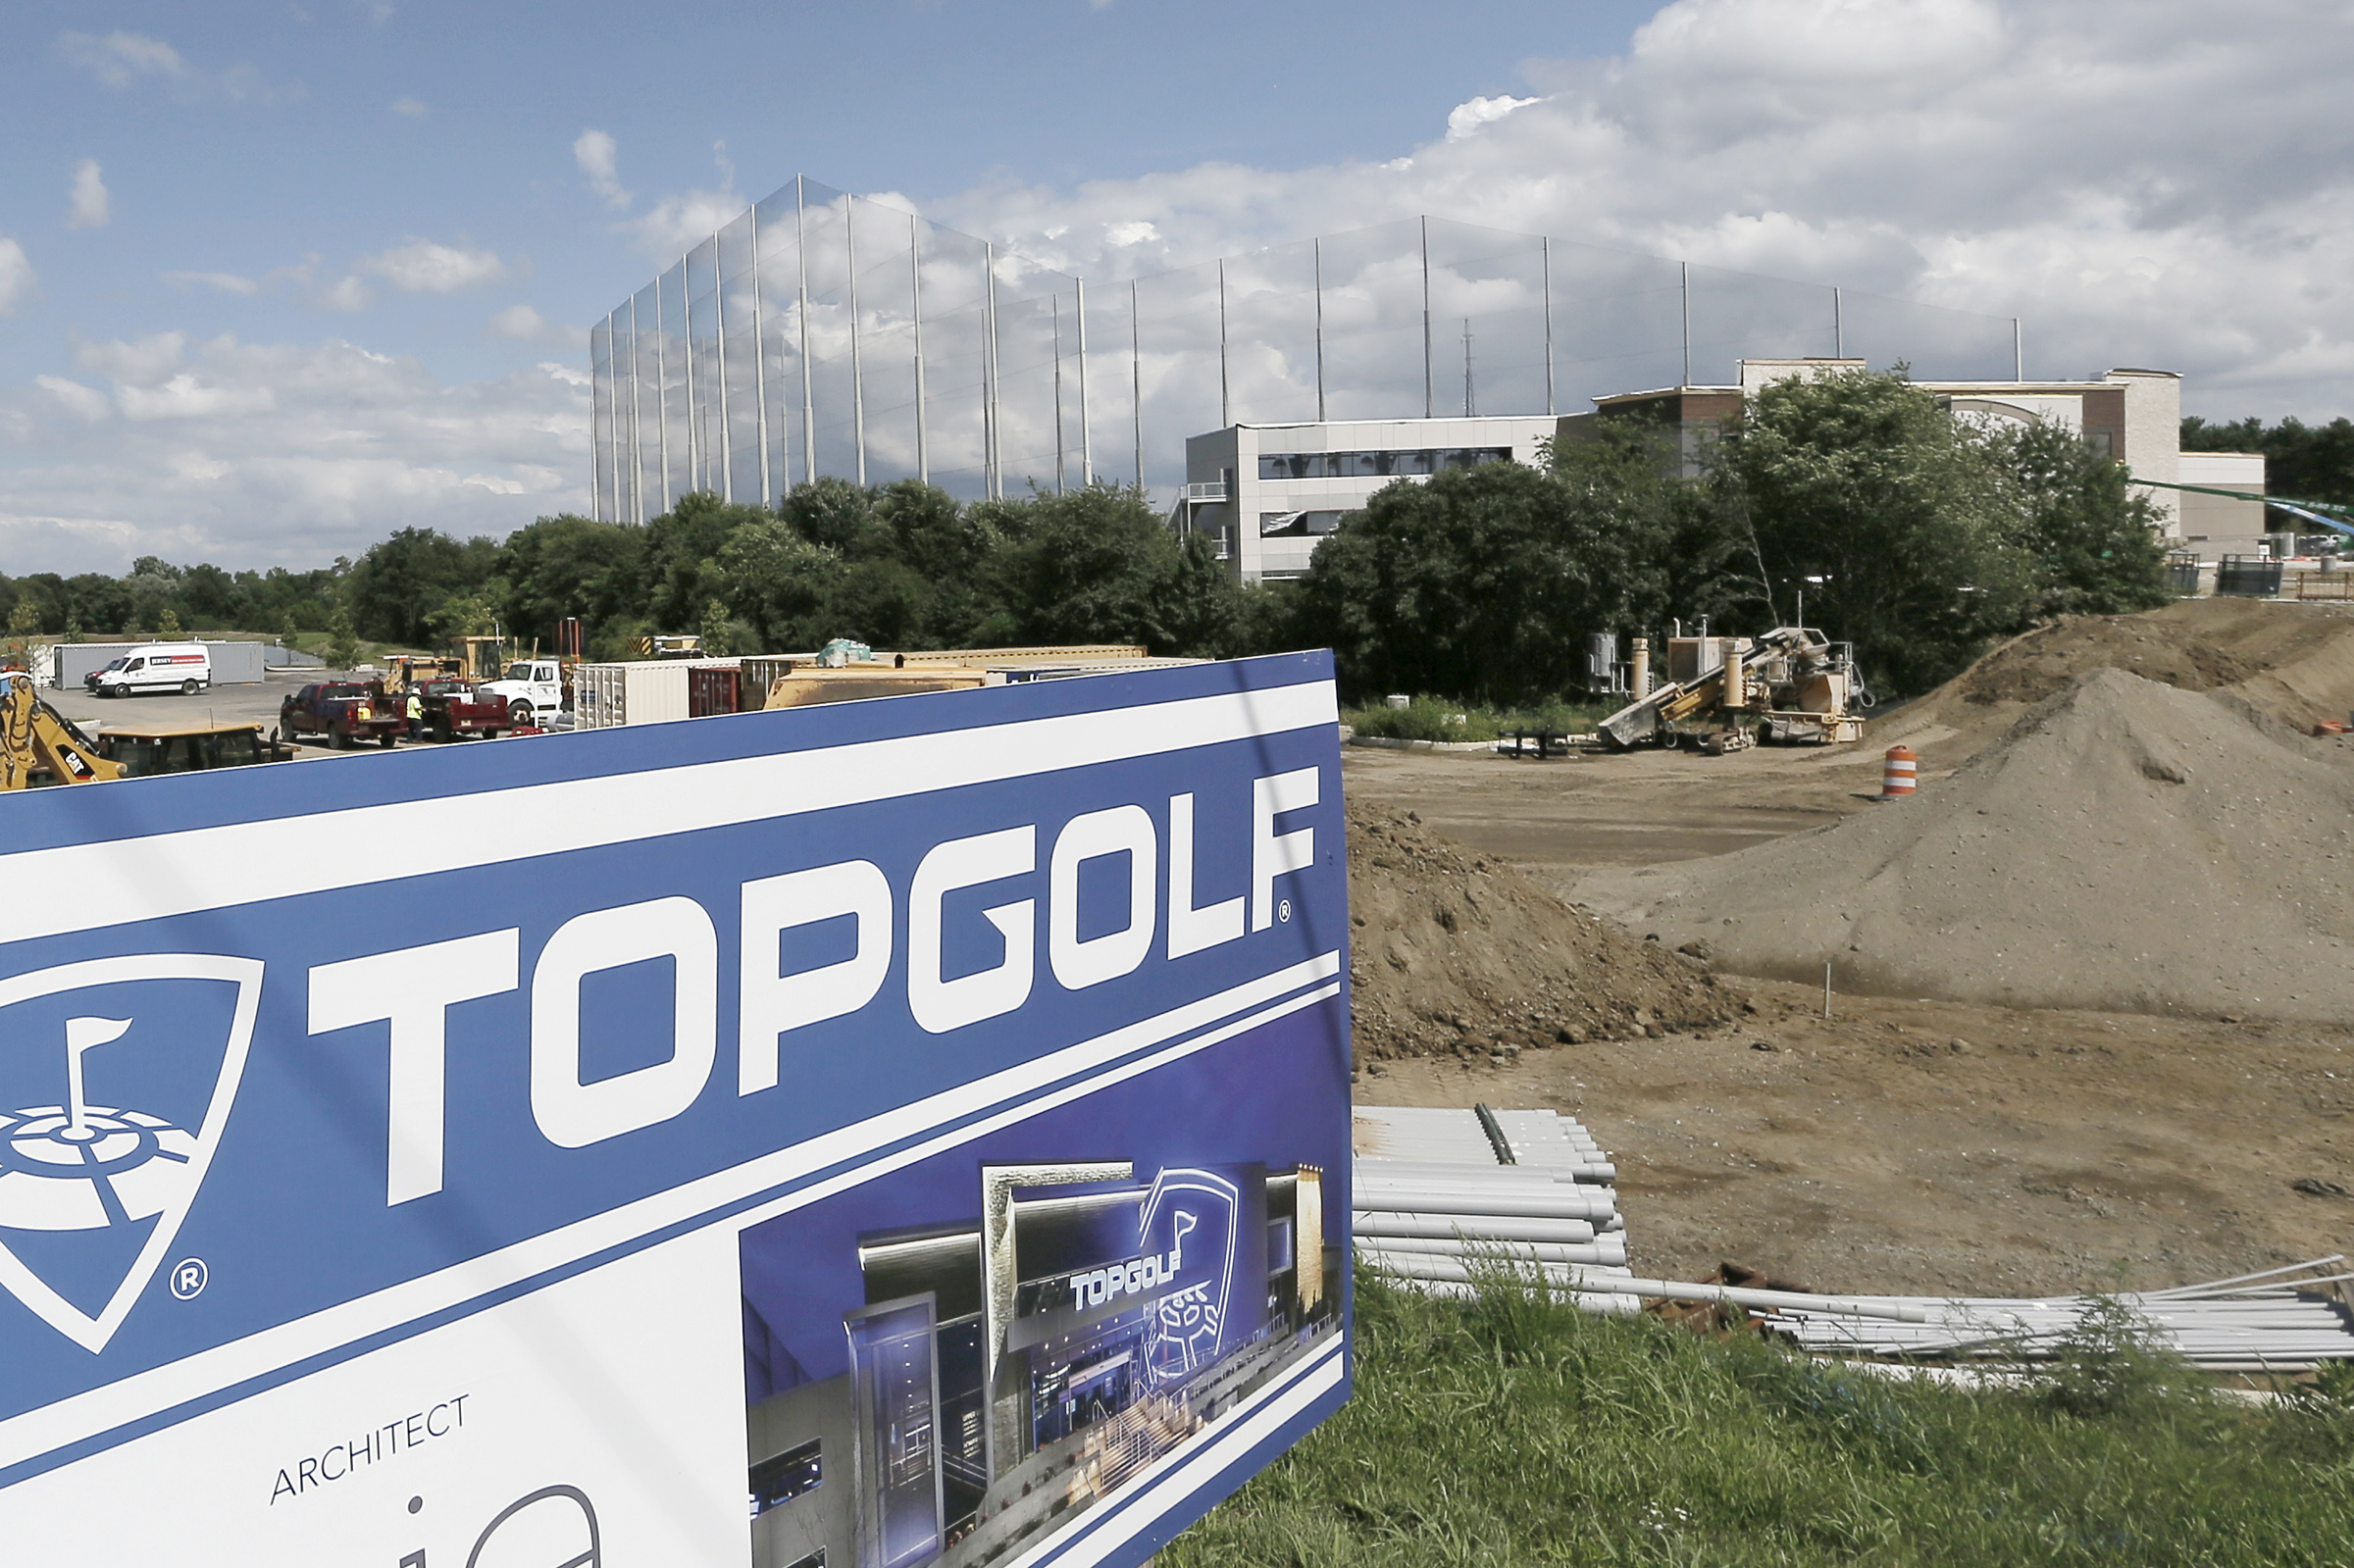 Construction continues at the new Topgolf entertainment center in Mount Laurel, NJ